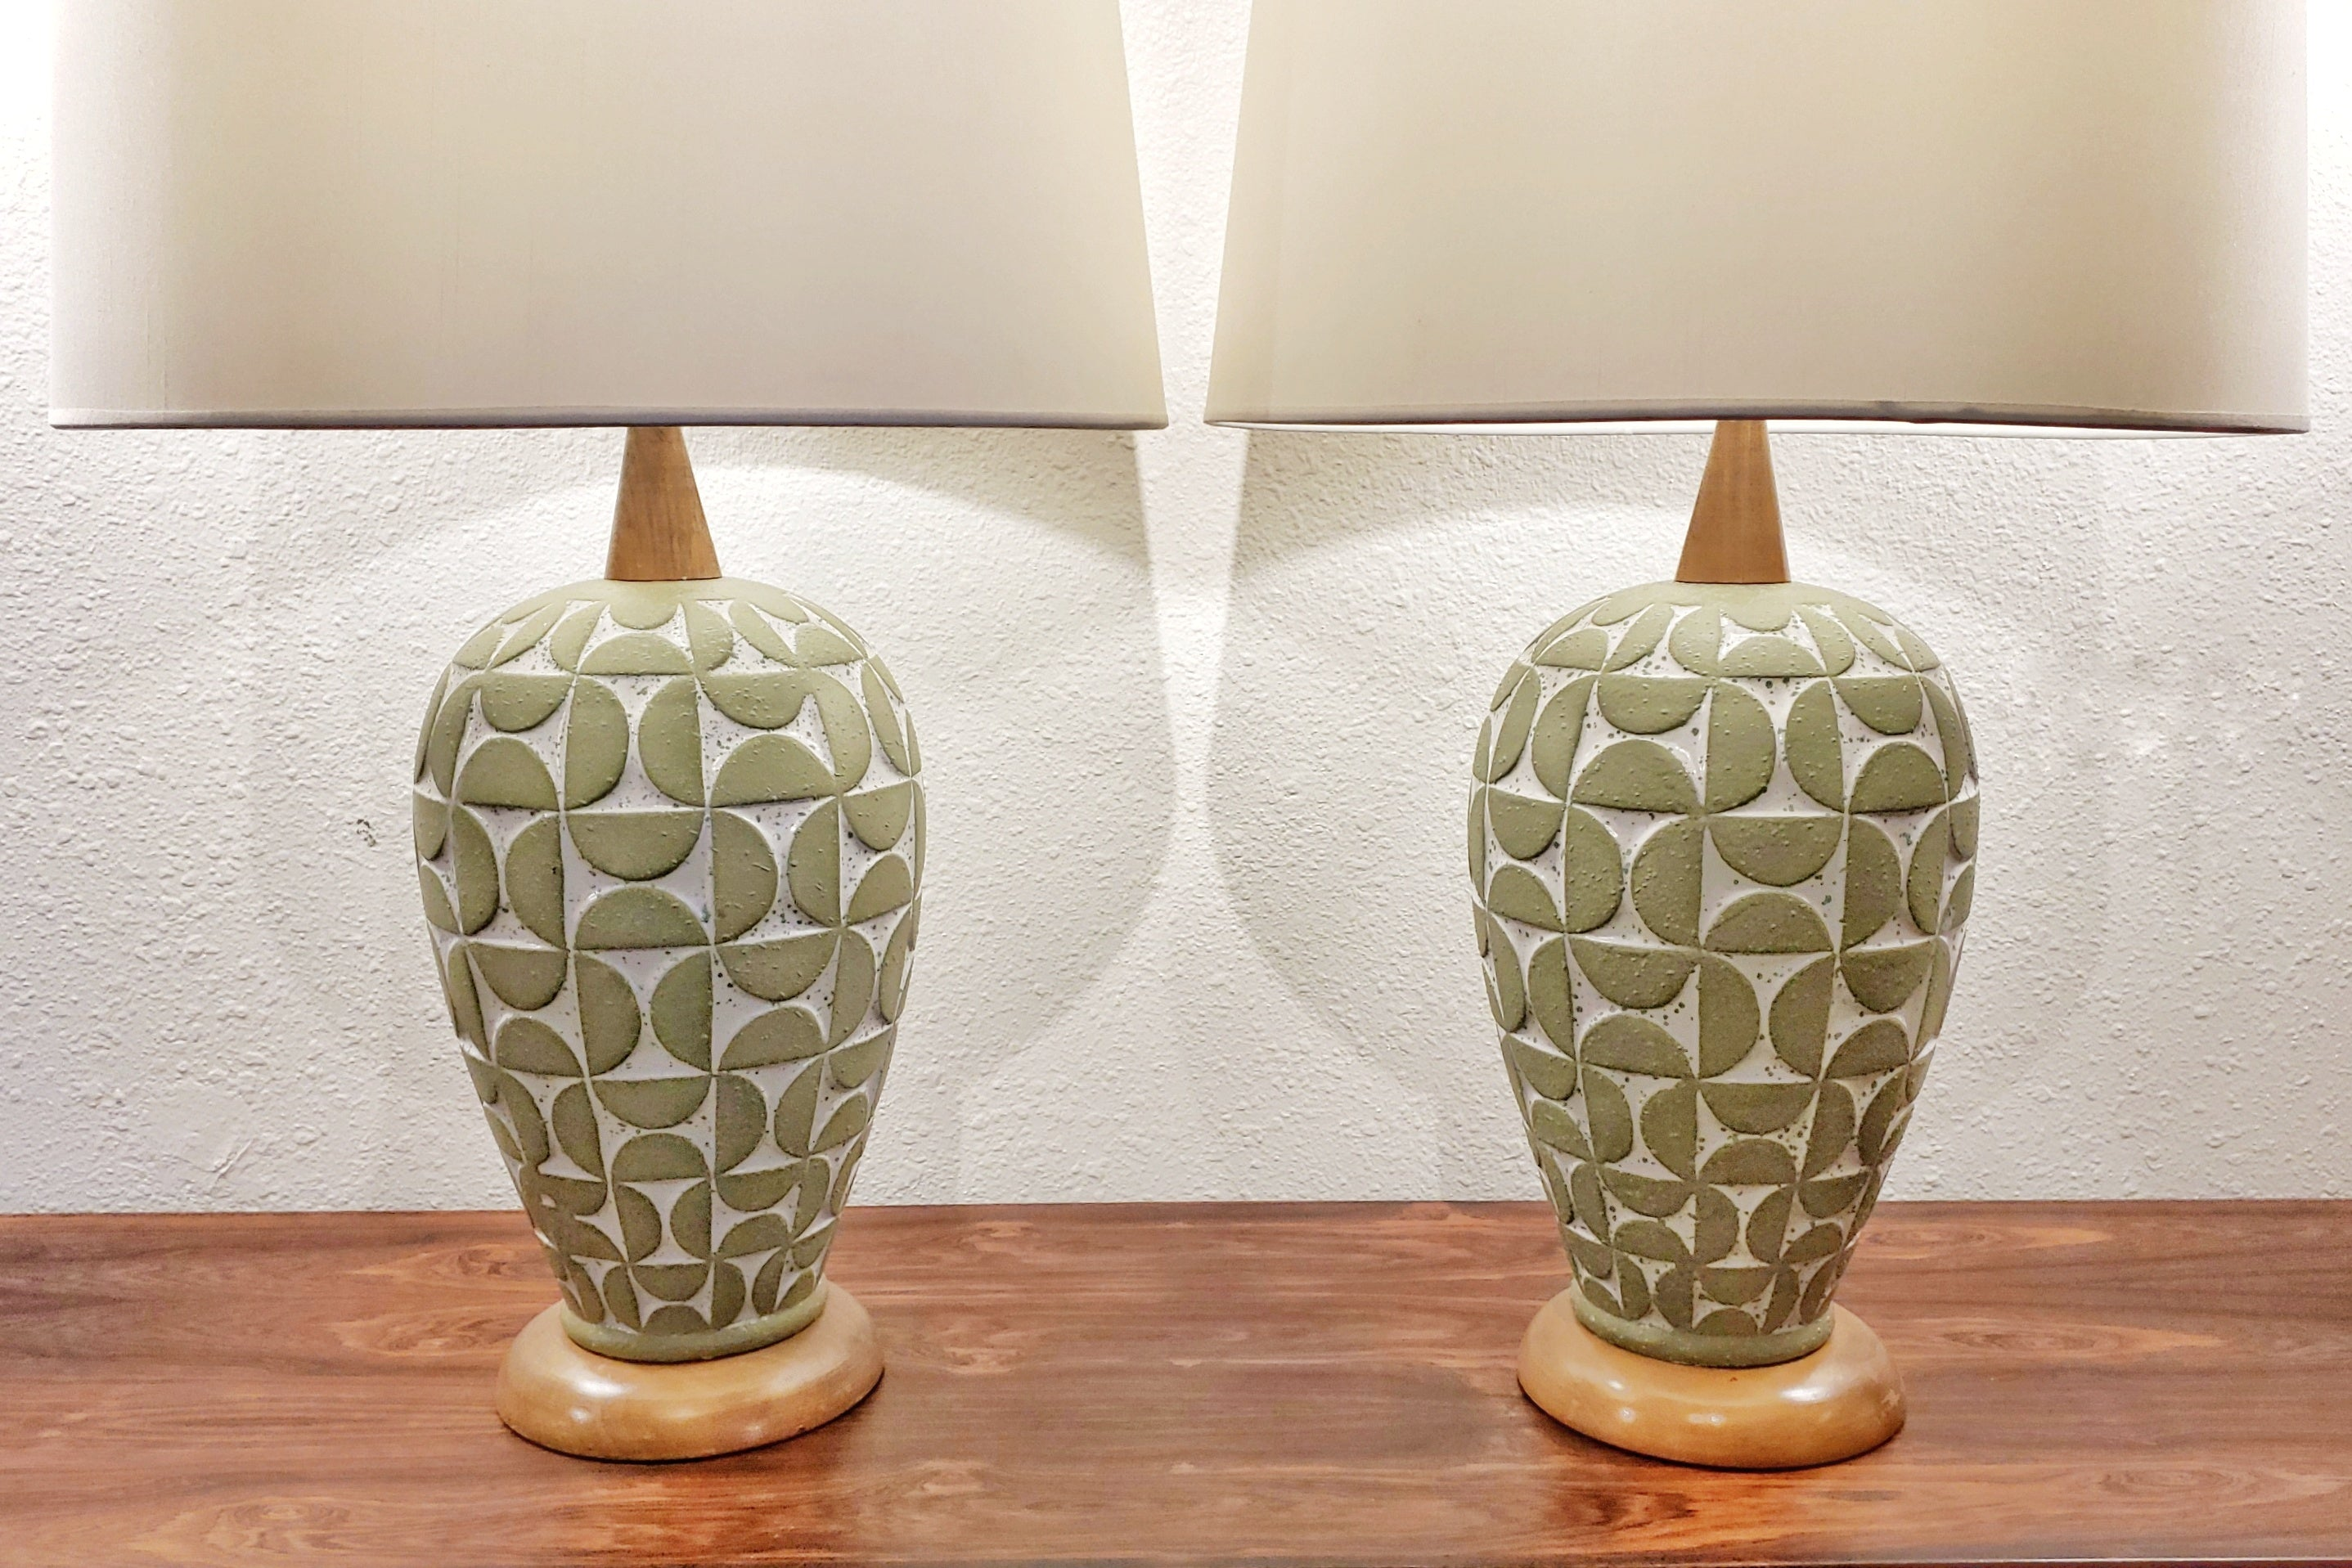 SCULPTED GEOMETRIC RELIEF TABLE LAMPS (PAIR)